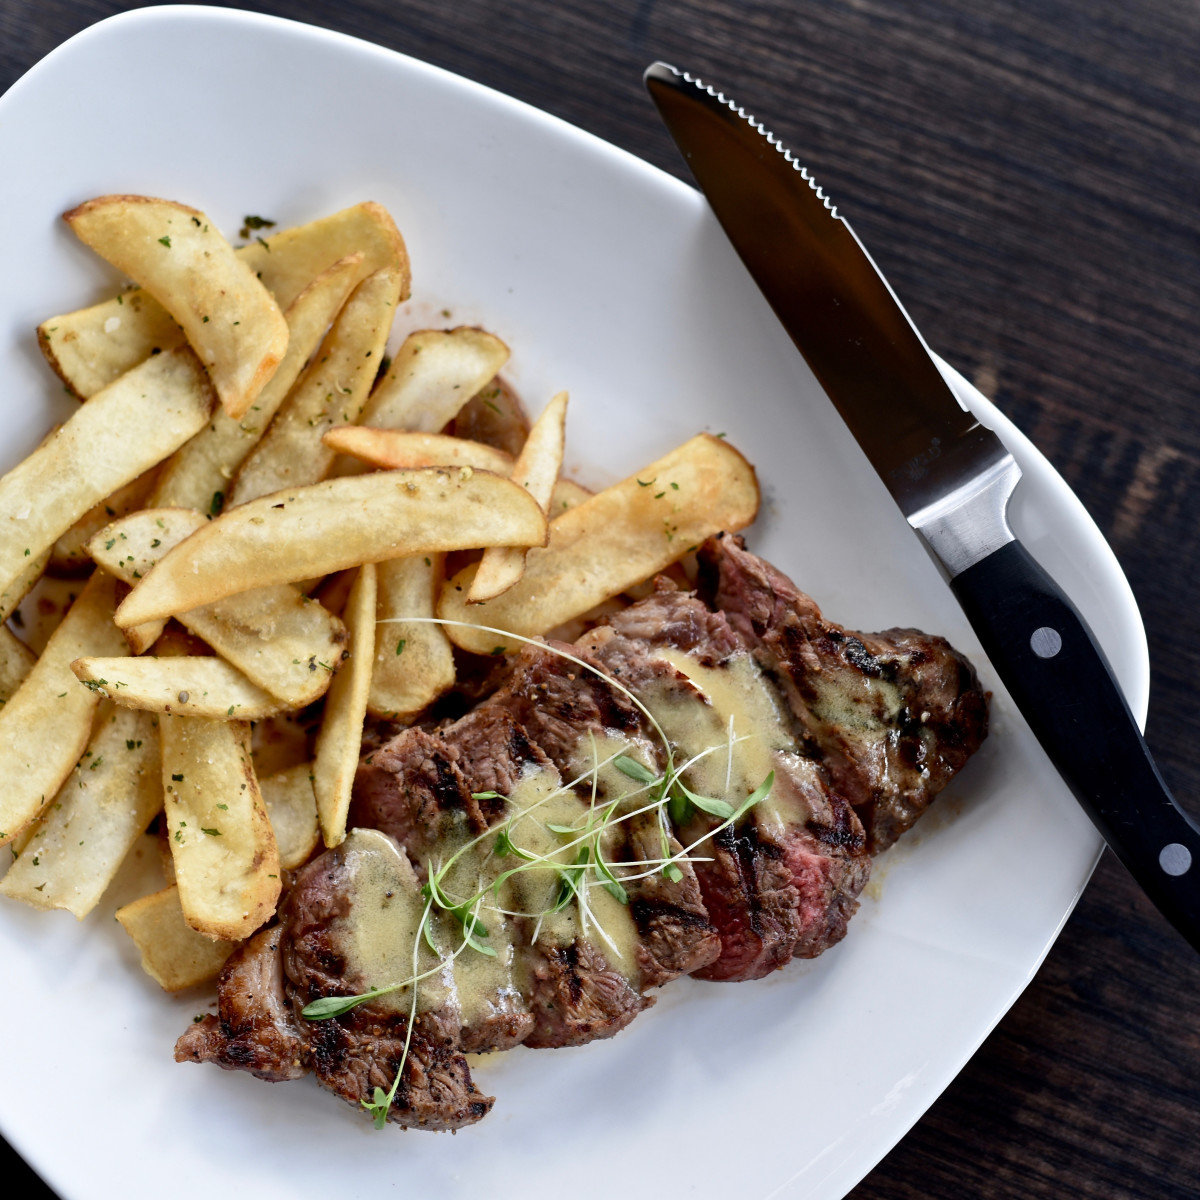 Peli Peli Woodlands steak frites